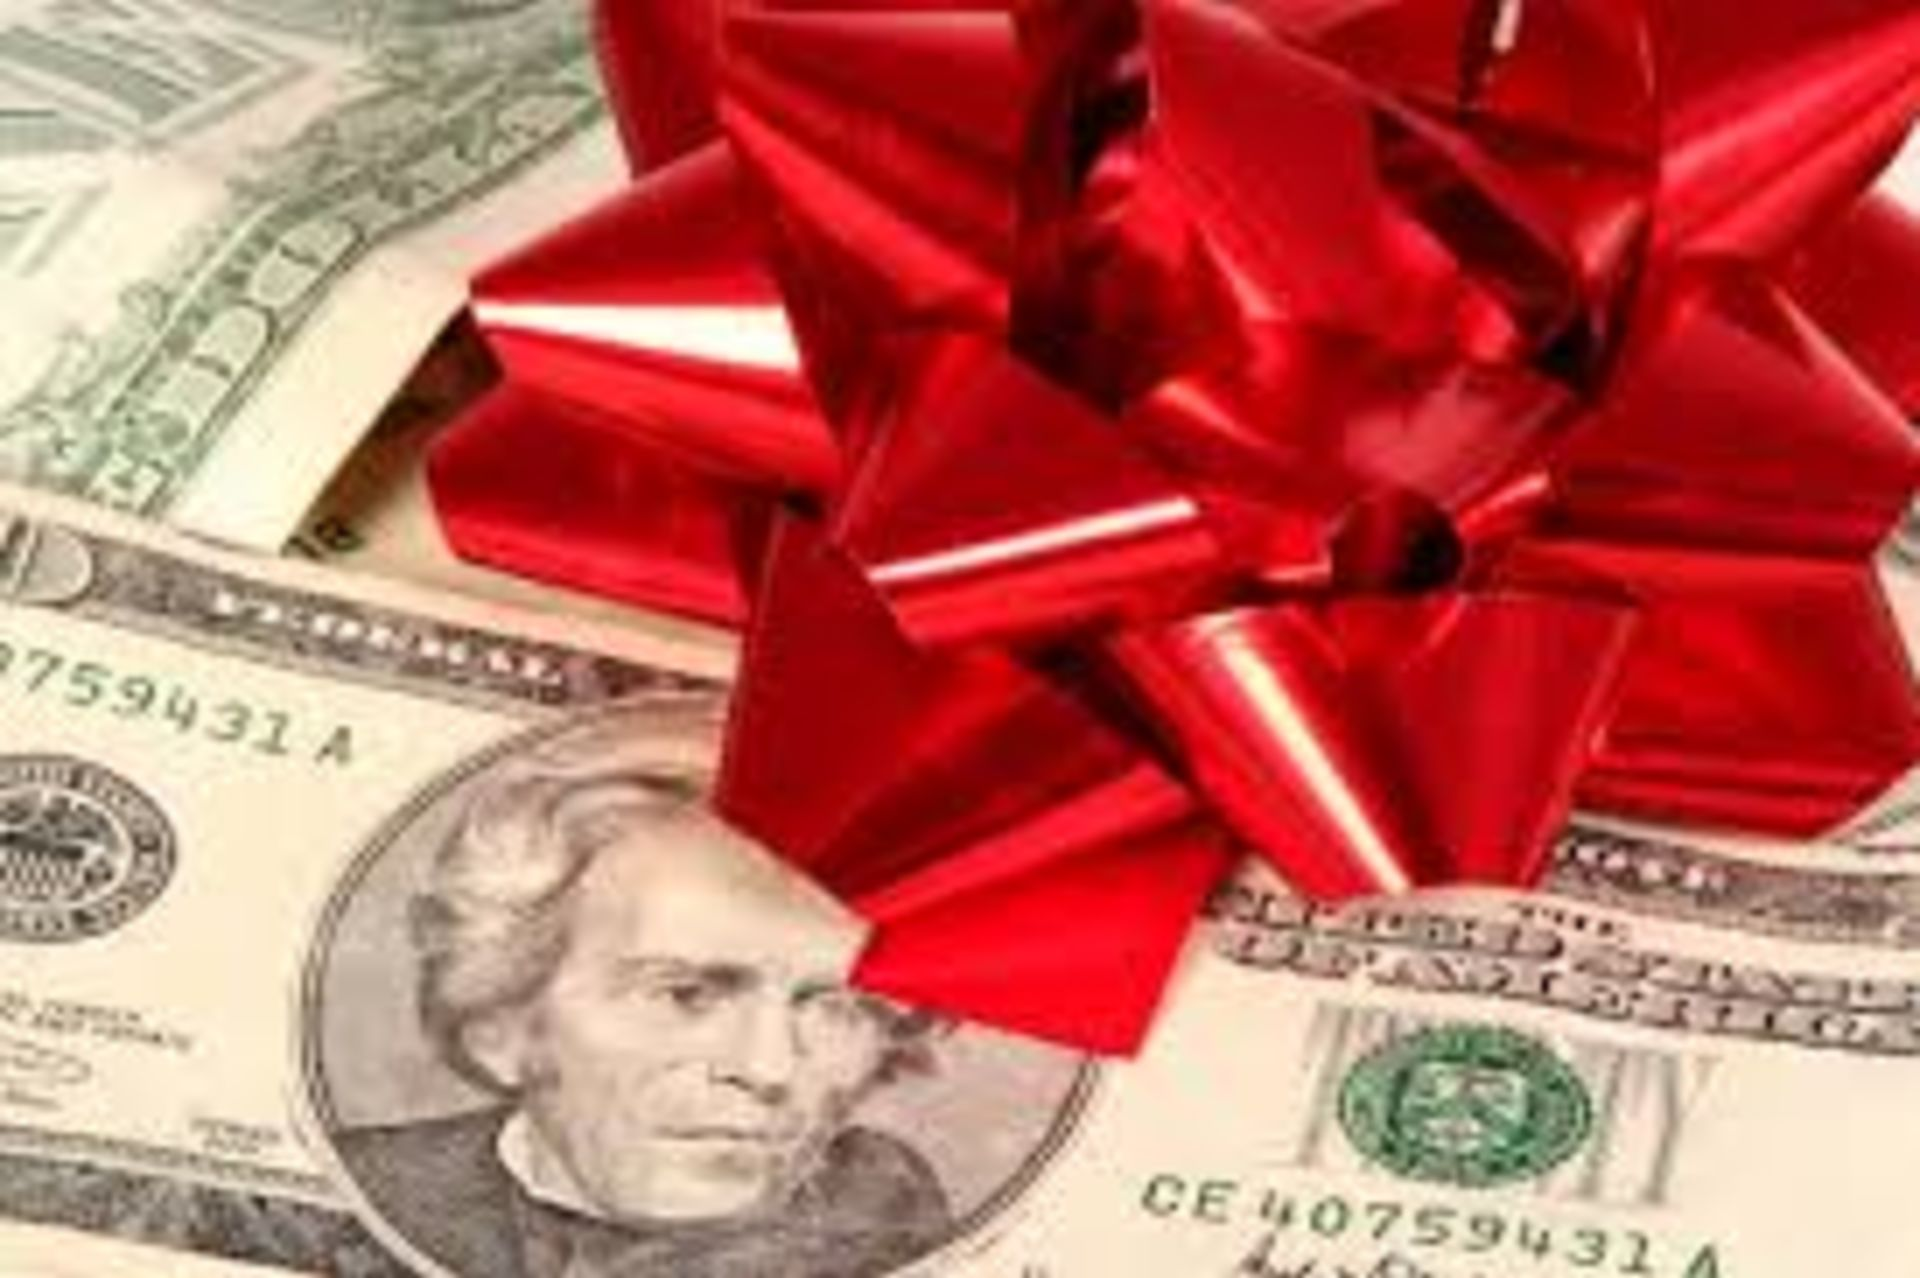 Don't Let Christmas Ruin Your Credit: 9 Mistakes Spending Mistakes To Avoid